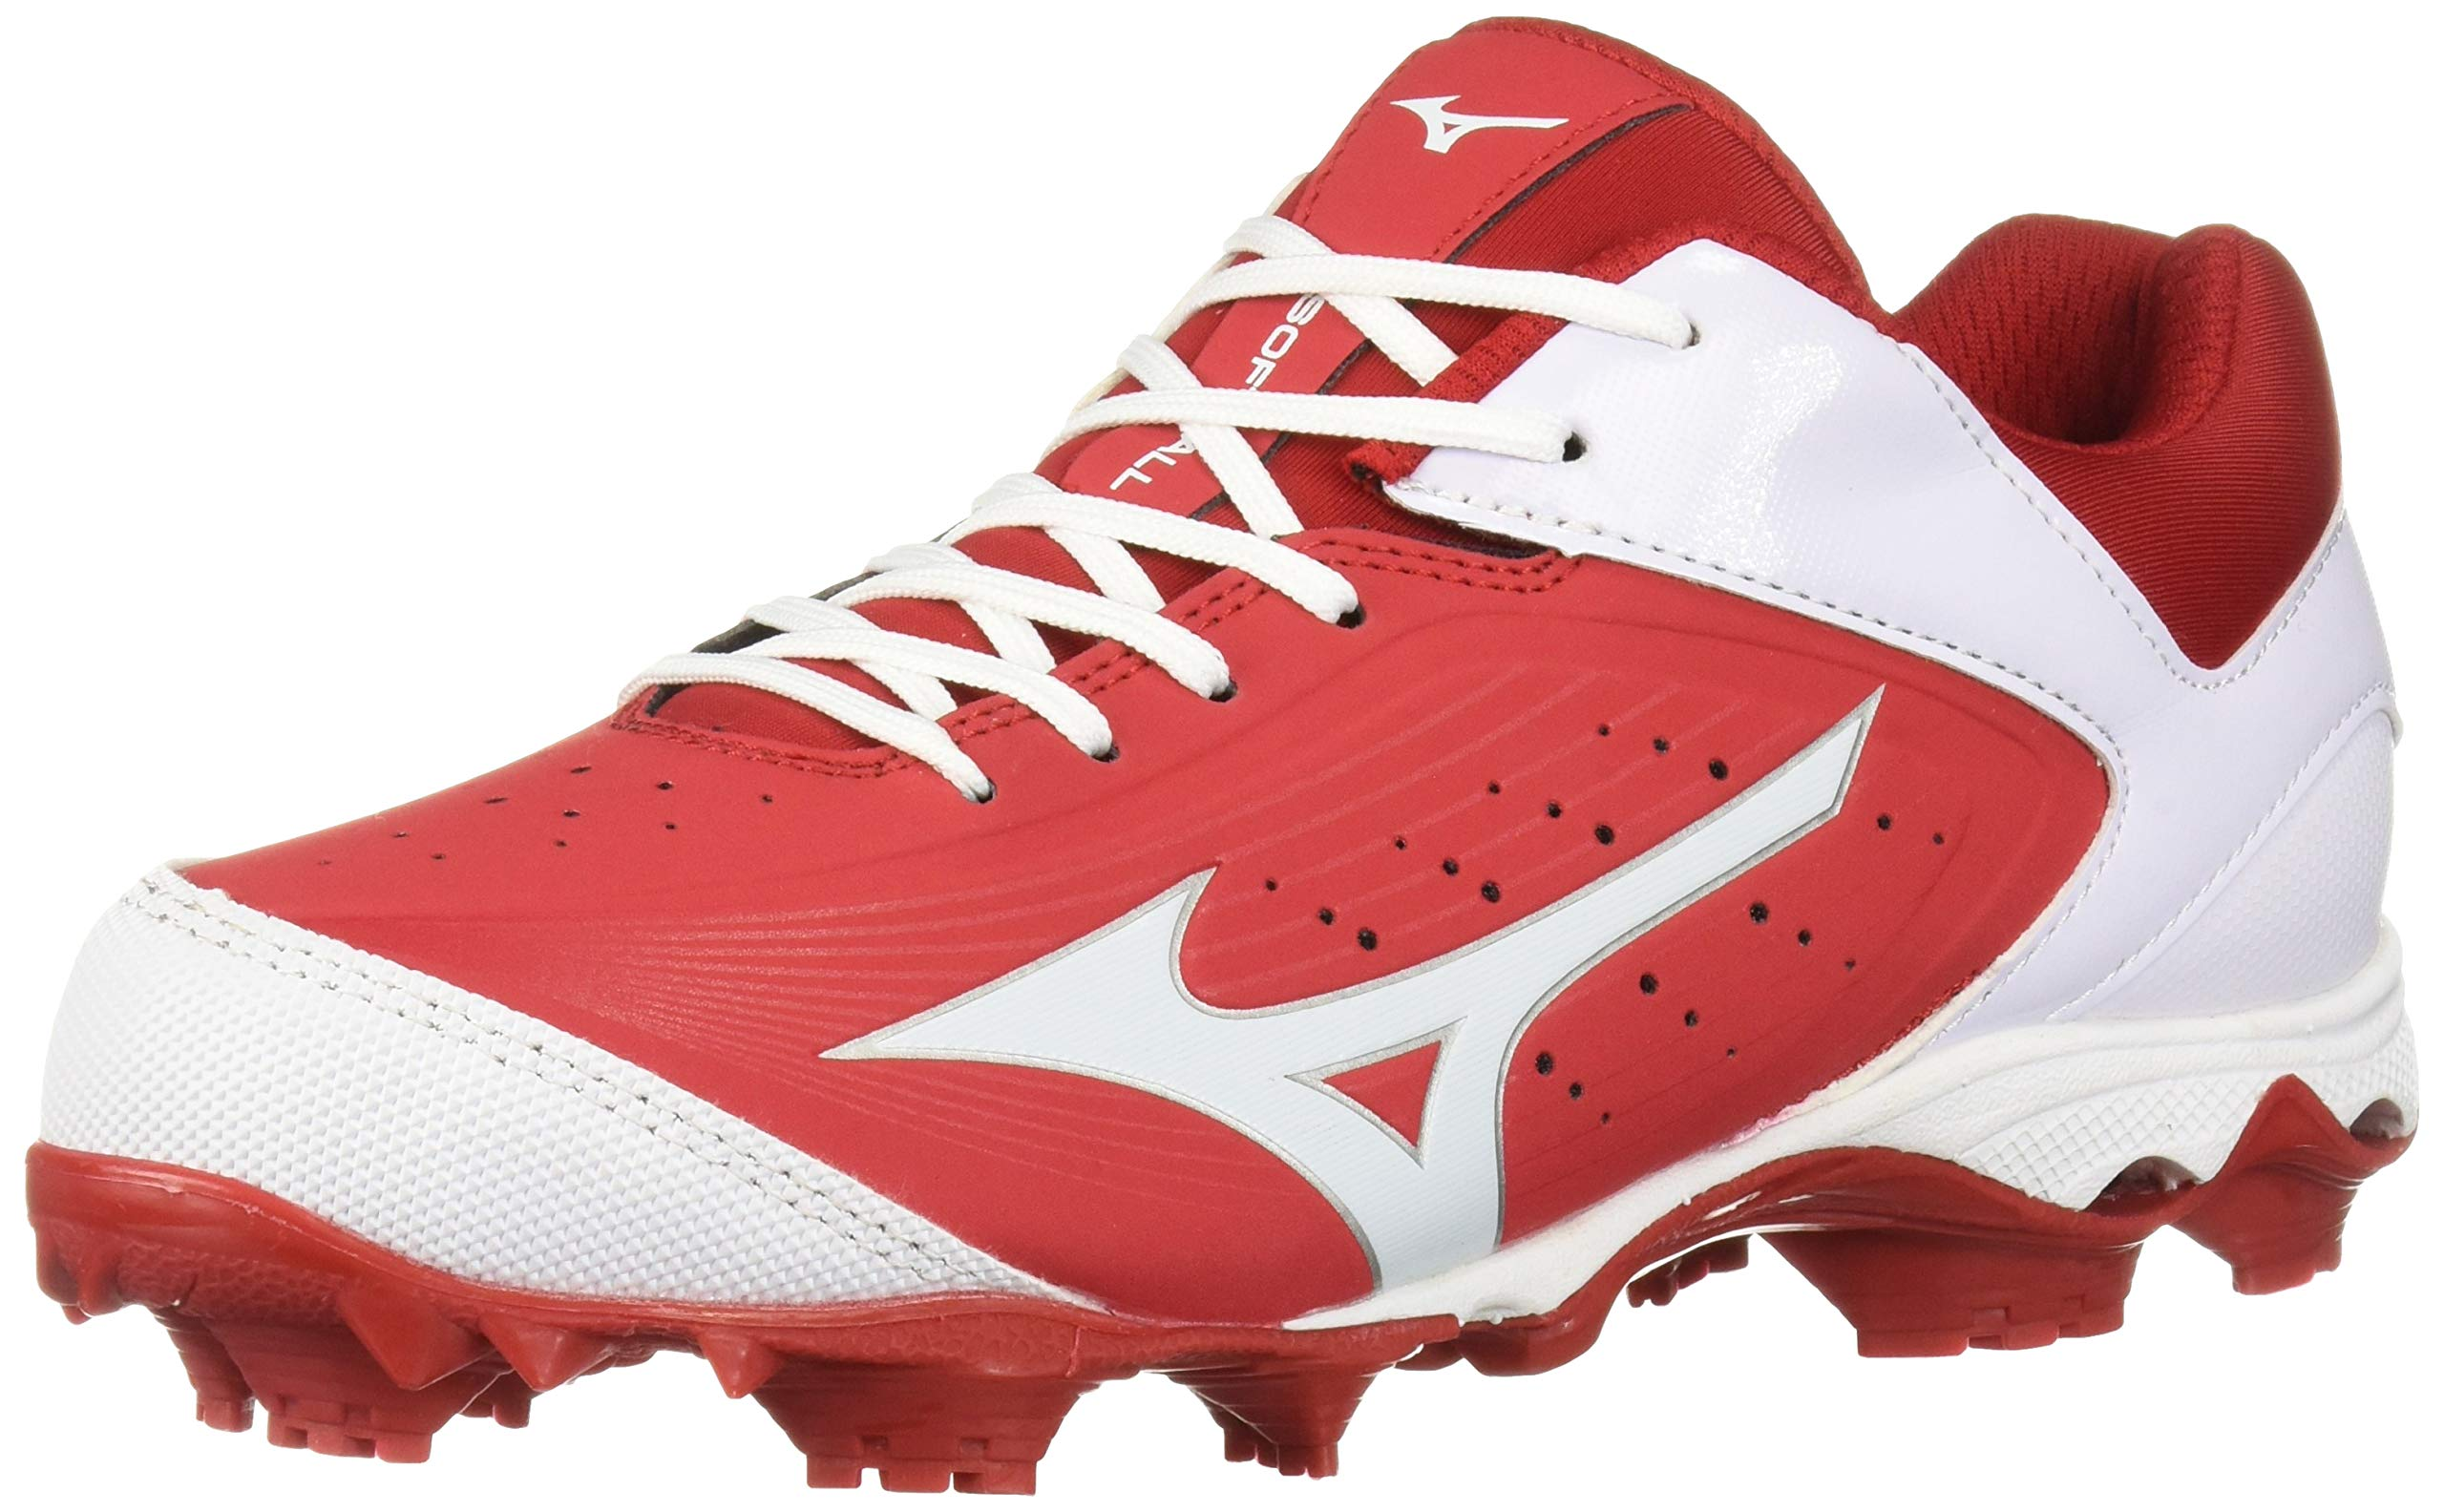 Mizuno Women's 9-Spike Advanced Finch Elite 3 Fastpitch Cleat Softball Shoe, Red/White, 7 B US by Mizuno